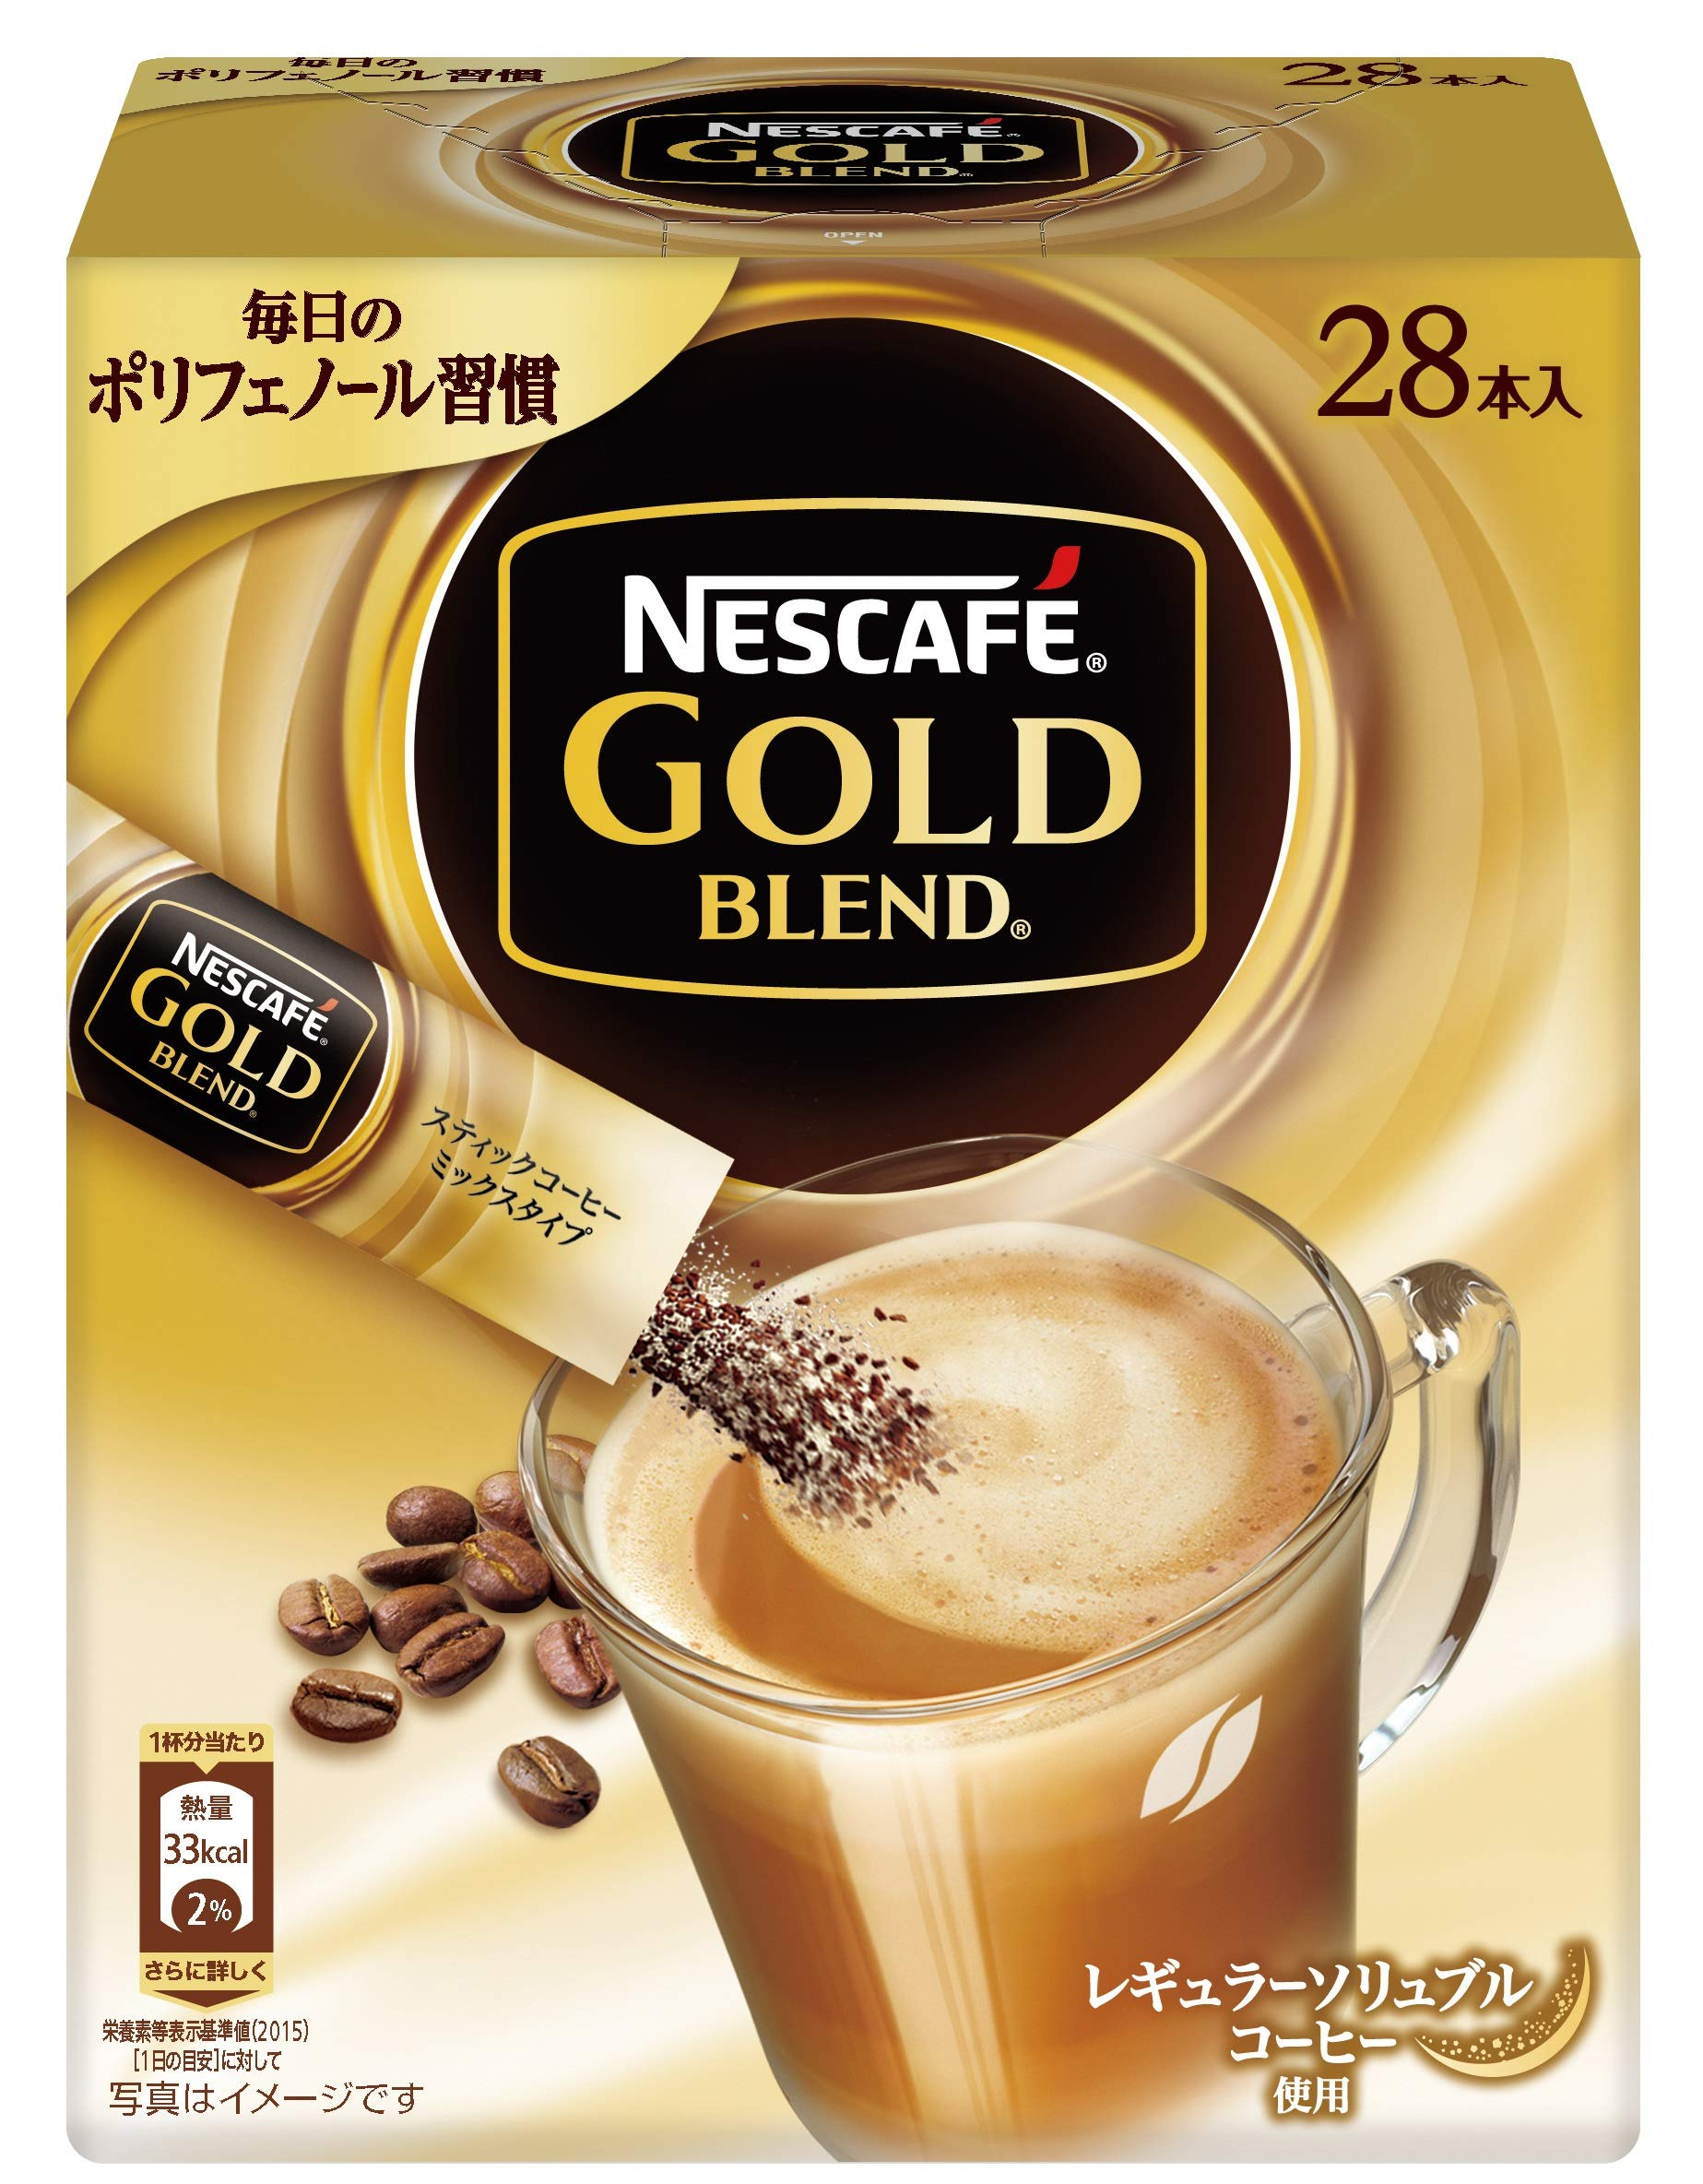 Nescafe Gold Blend coffee stick 28PX3 boxes